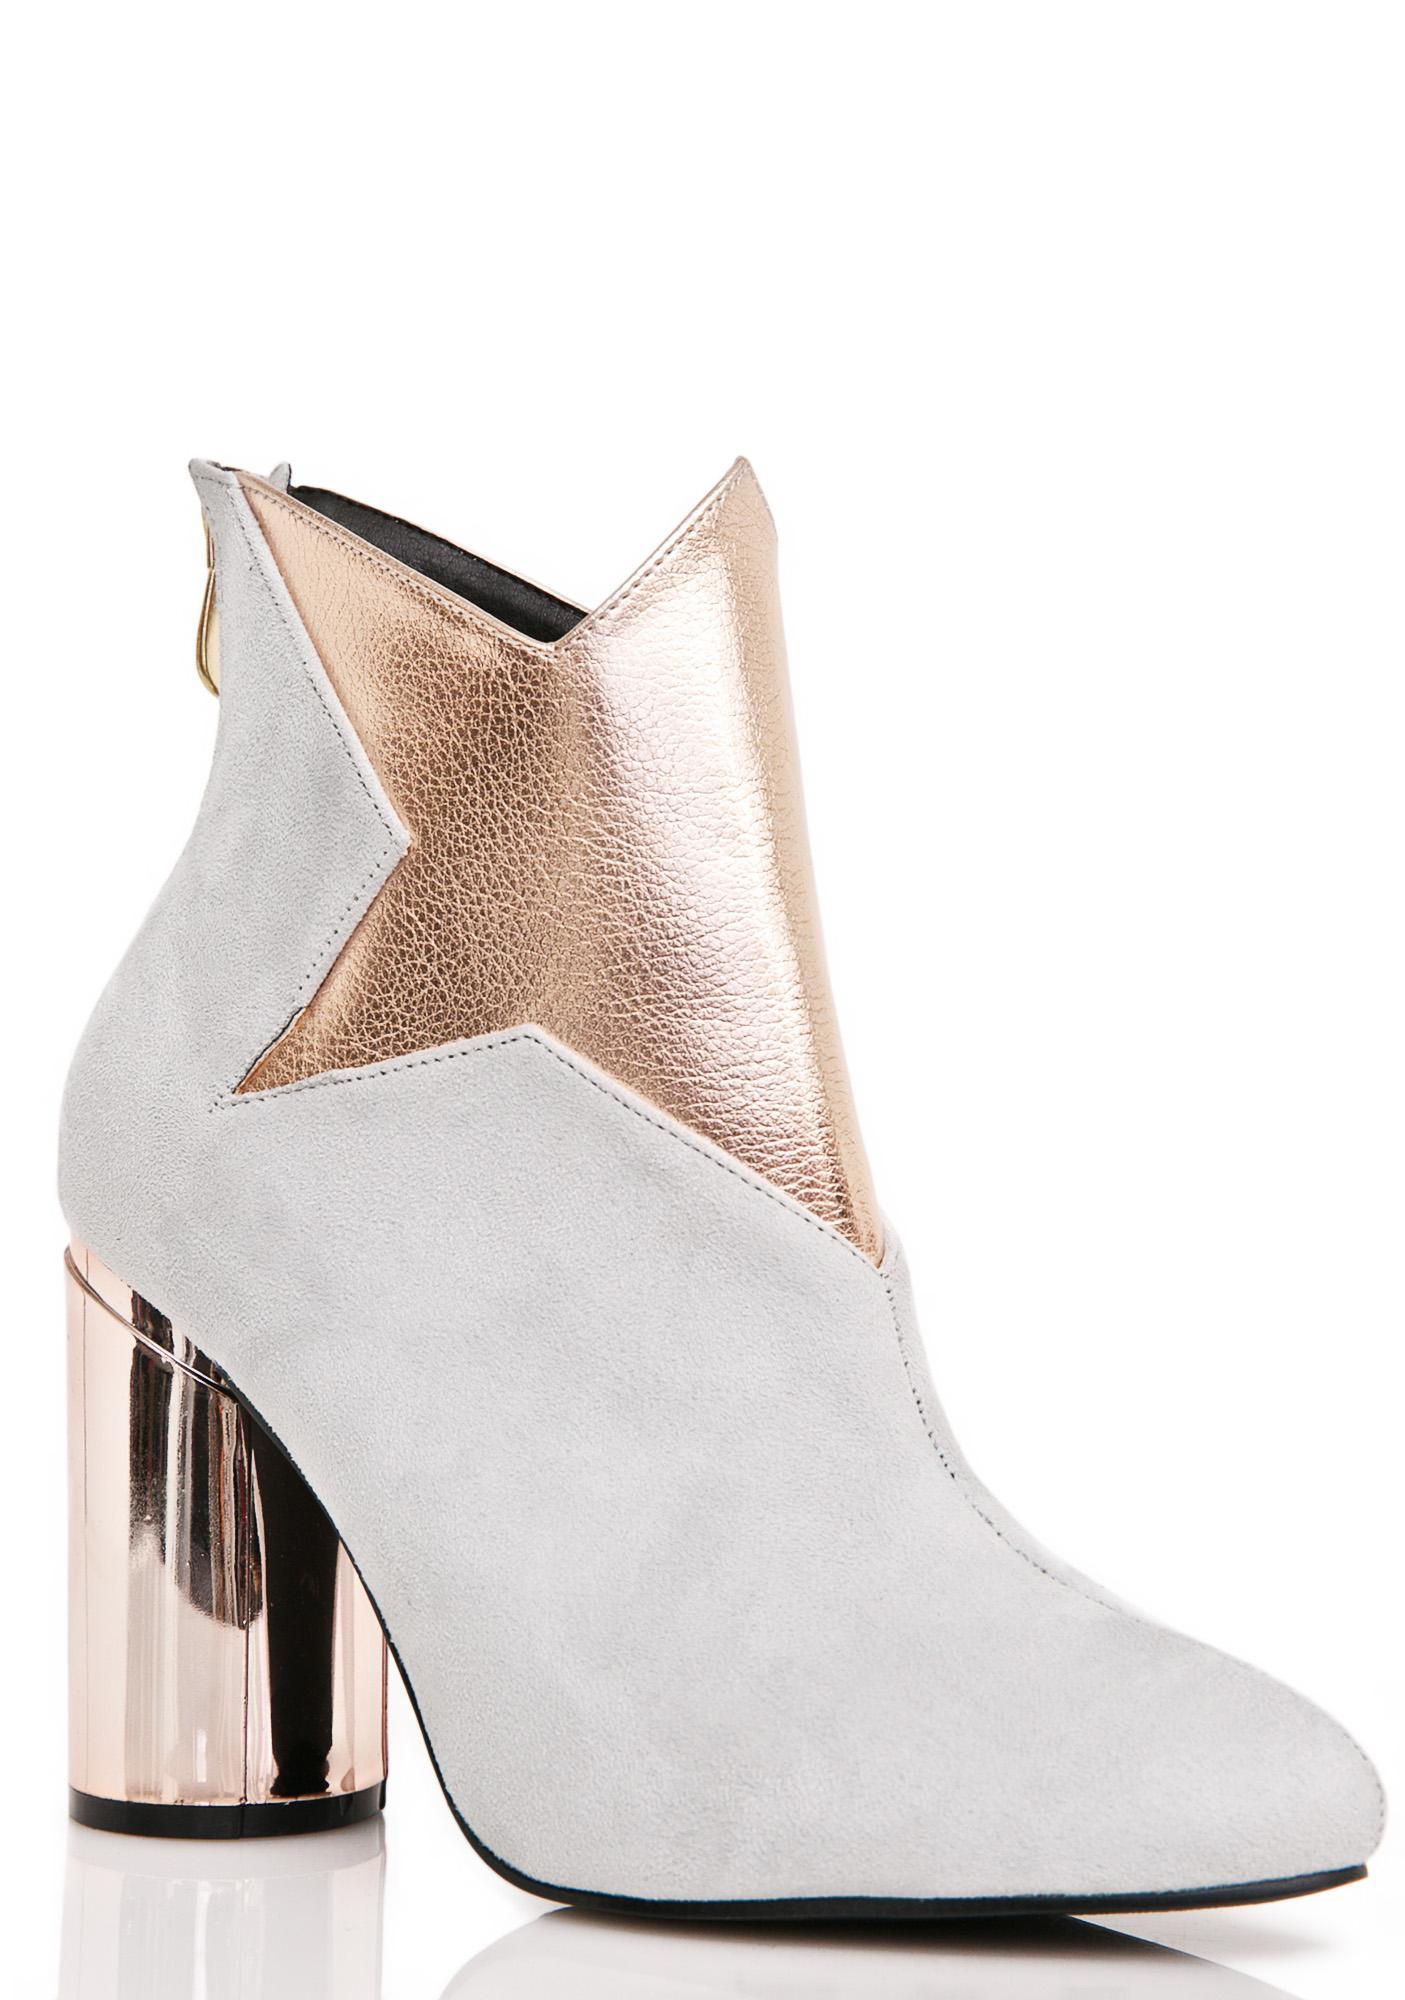 8b9473d71177 Givenchy Star Patch Ankle Boots